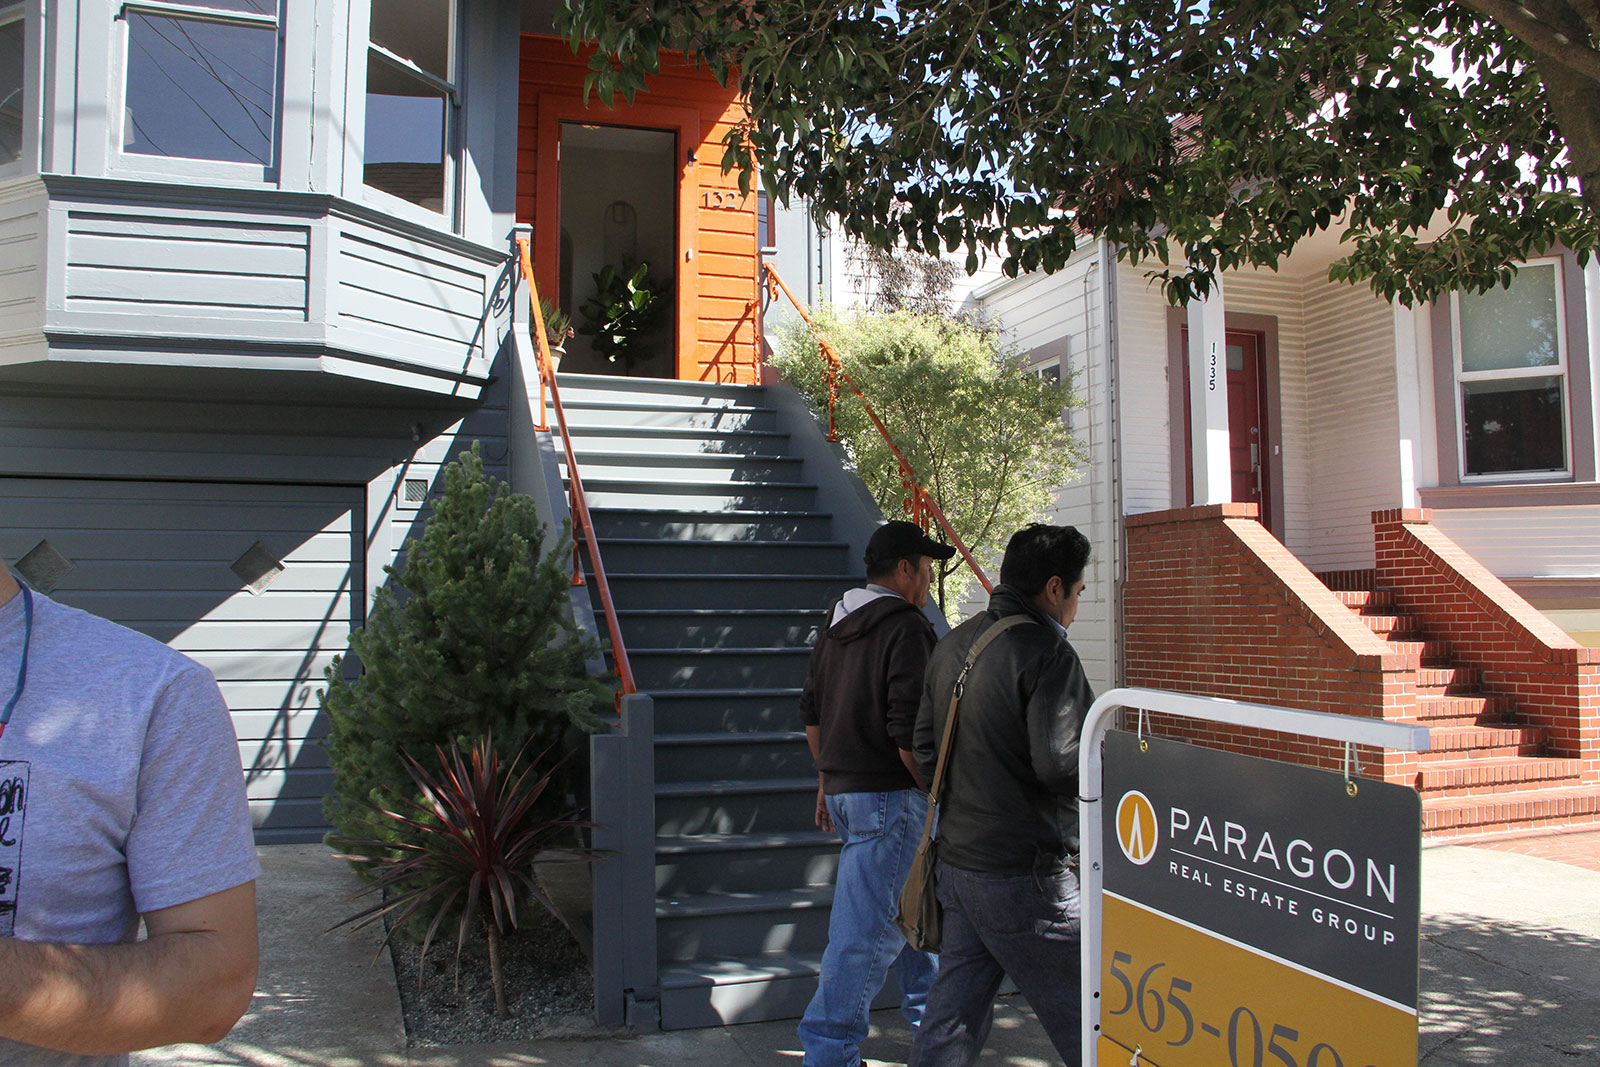 SNAP: Hampshire St. Home for $900K